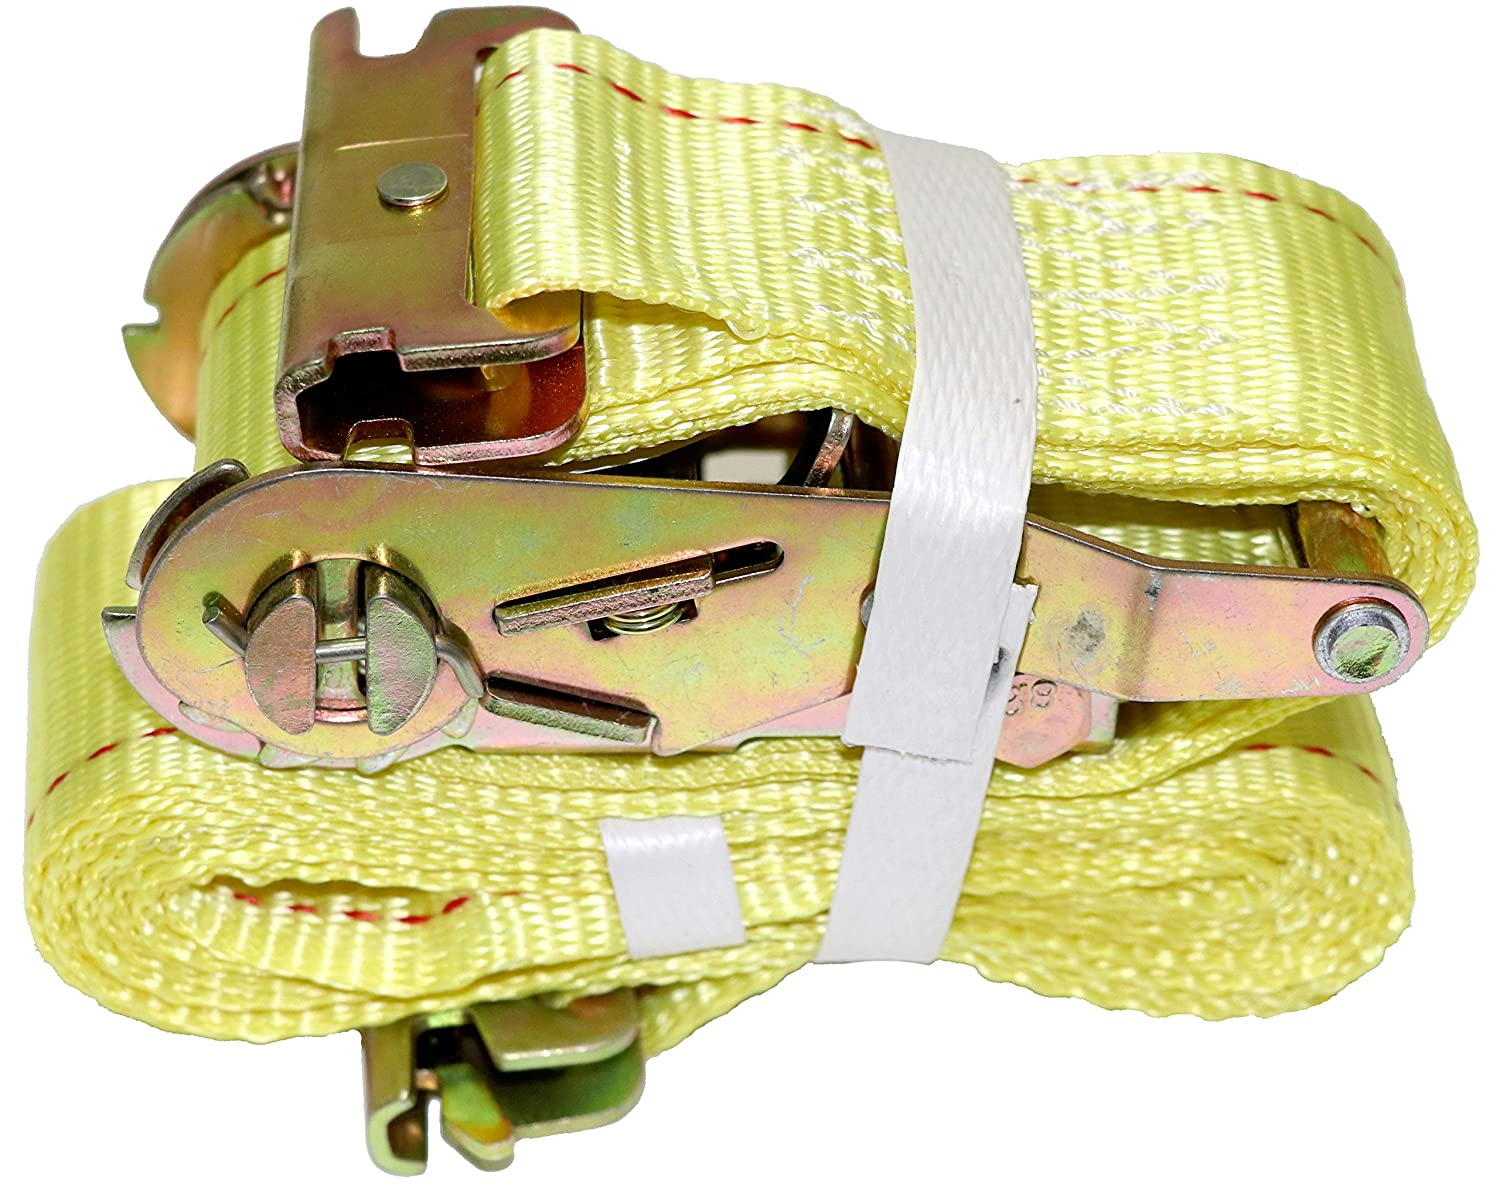 """4 Pack Ideal Enclosed Trailer Tie Down /& Dry Van Cargo Straps Standard E Track Spring Fittings or Connectors DK Global Heavy Duty Steel Ratchet /& Polyester Webbing DKG 2/"""" x 12/' E Track Ratchet Straps"""